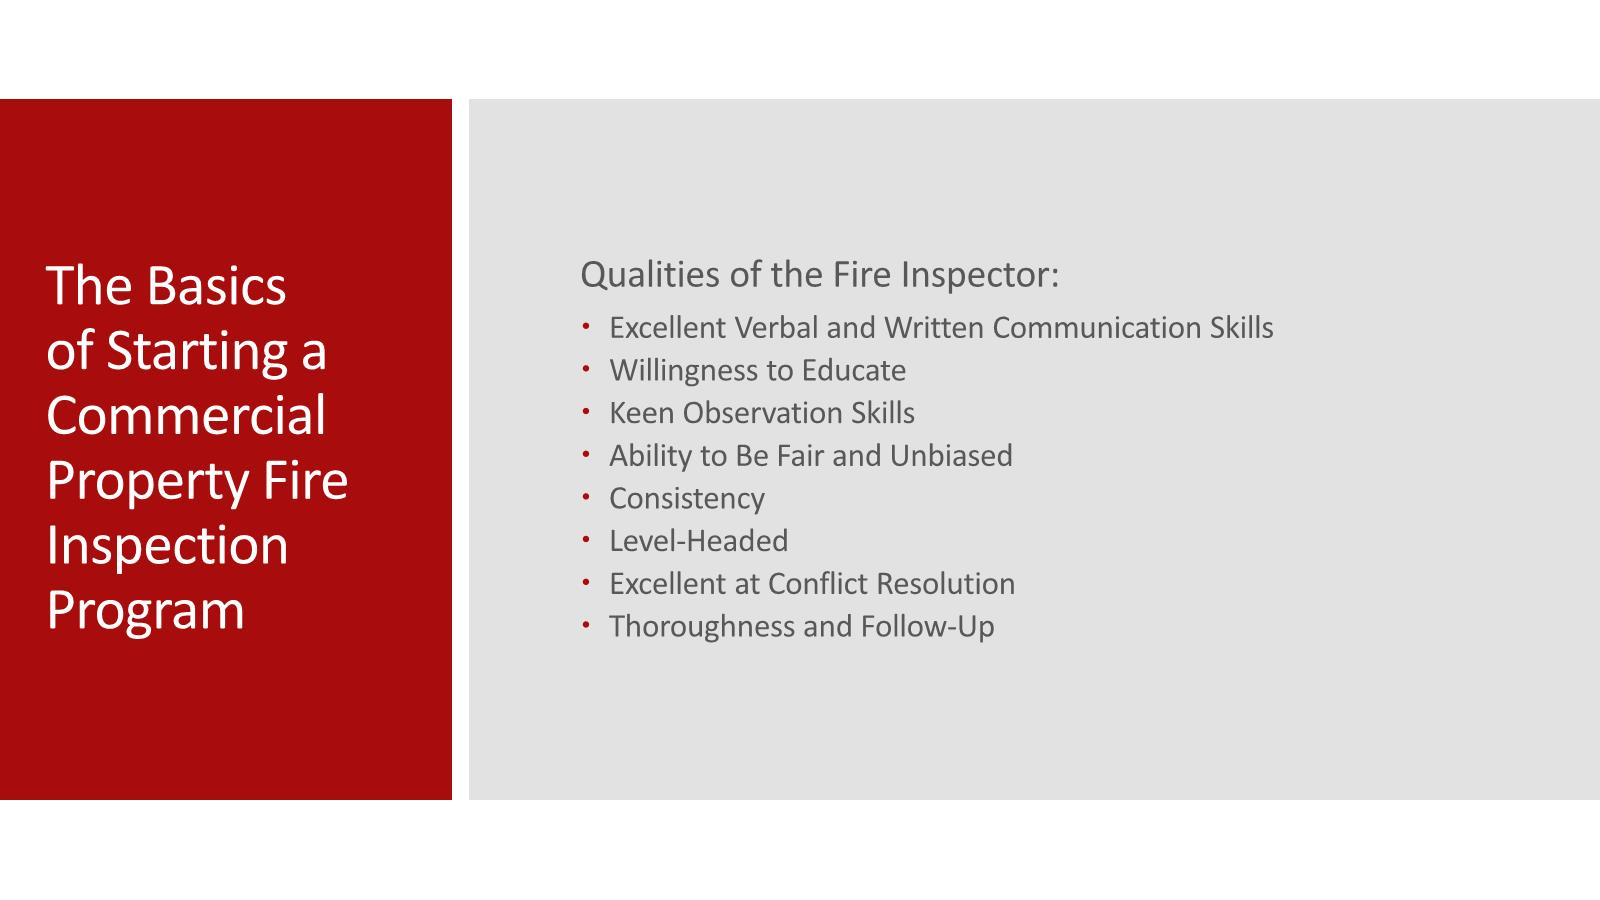 Commercial-Property-Fire-Inspections Page 020.jpg